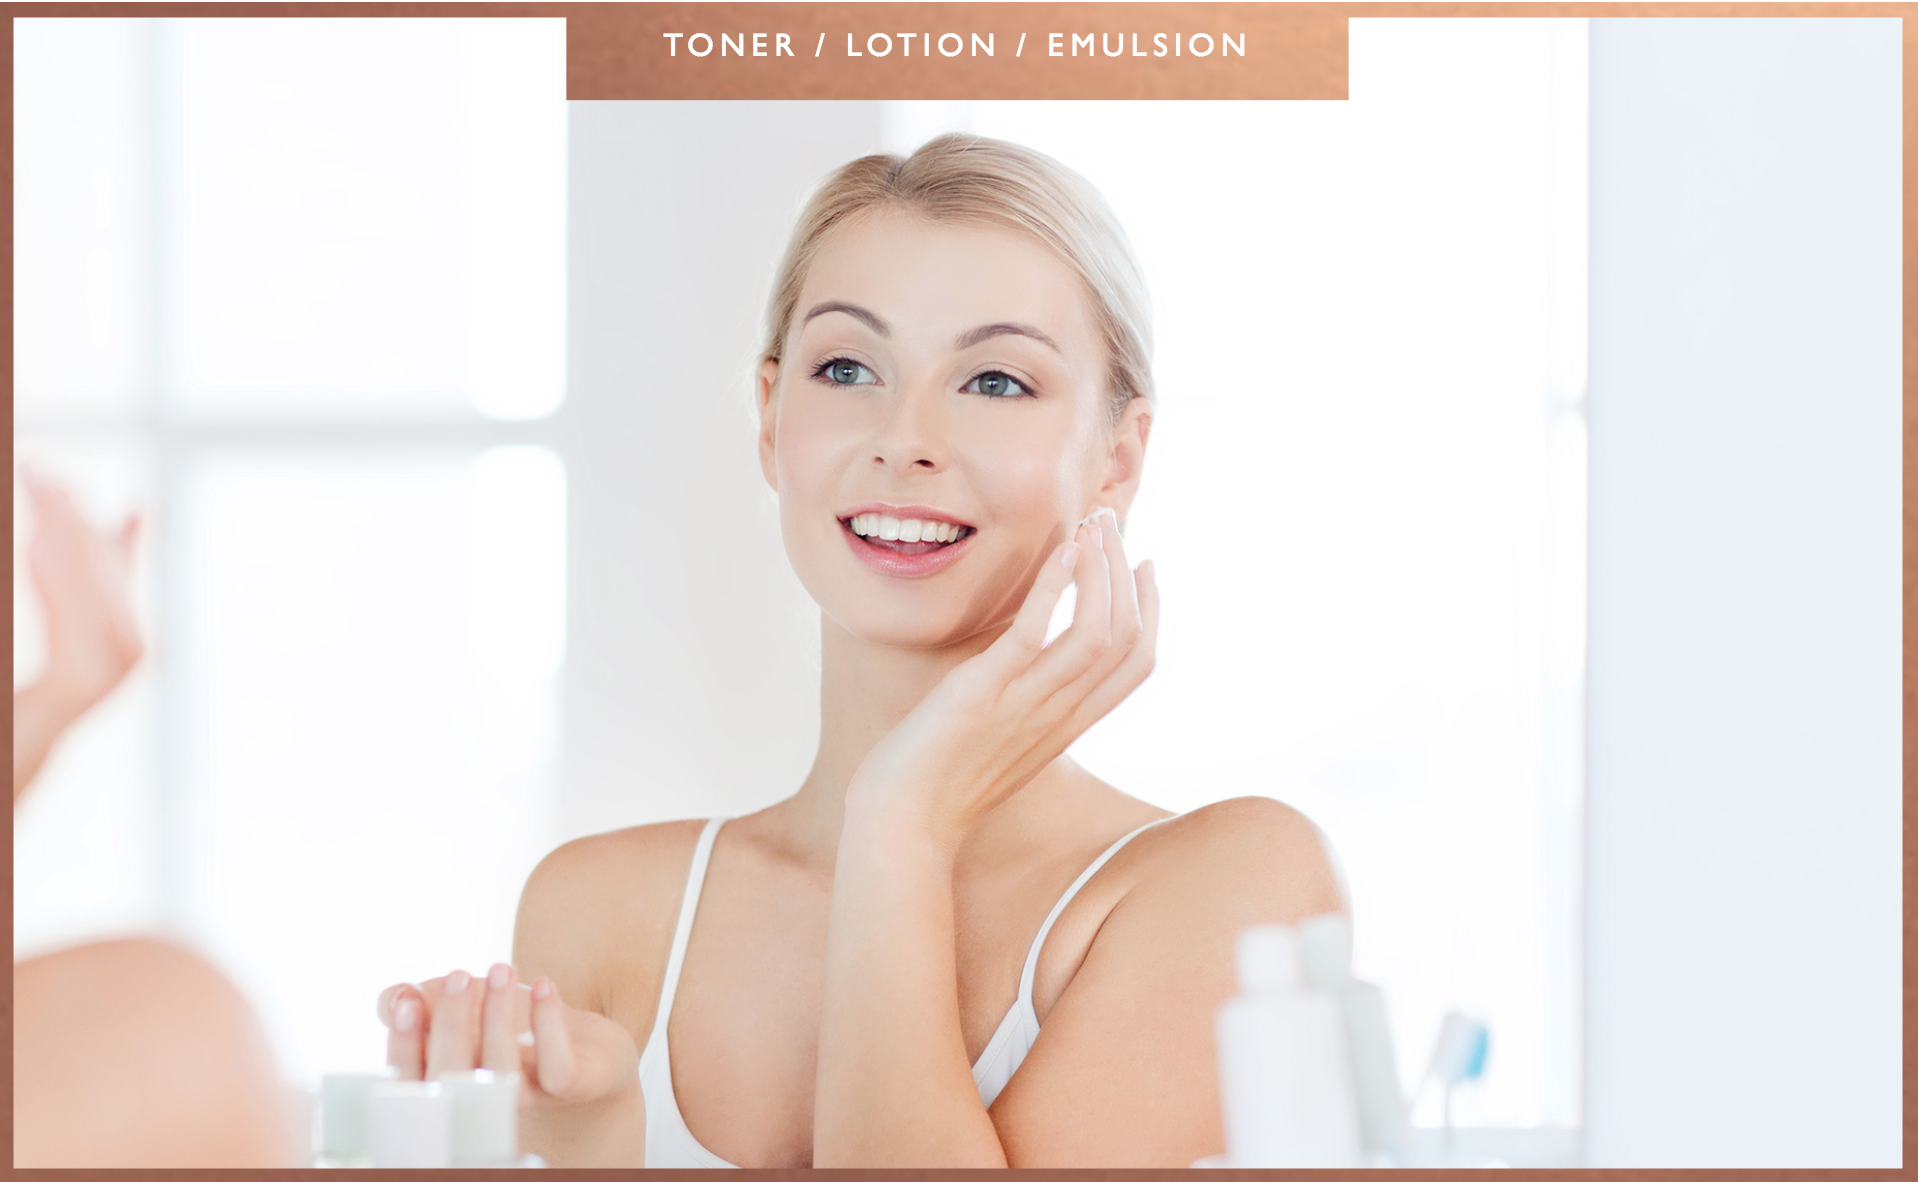 Toner / Lotion / Emulsion